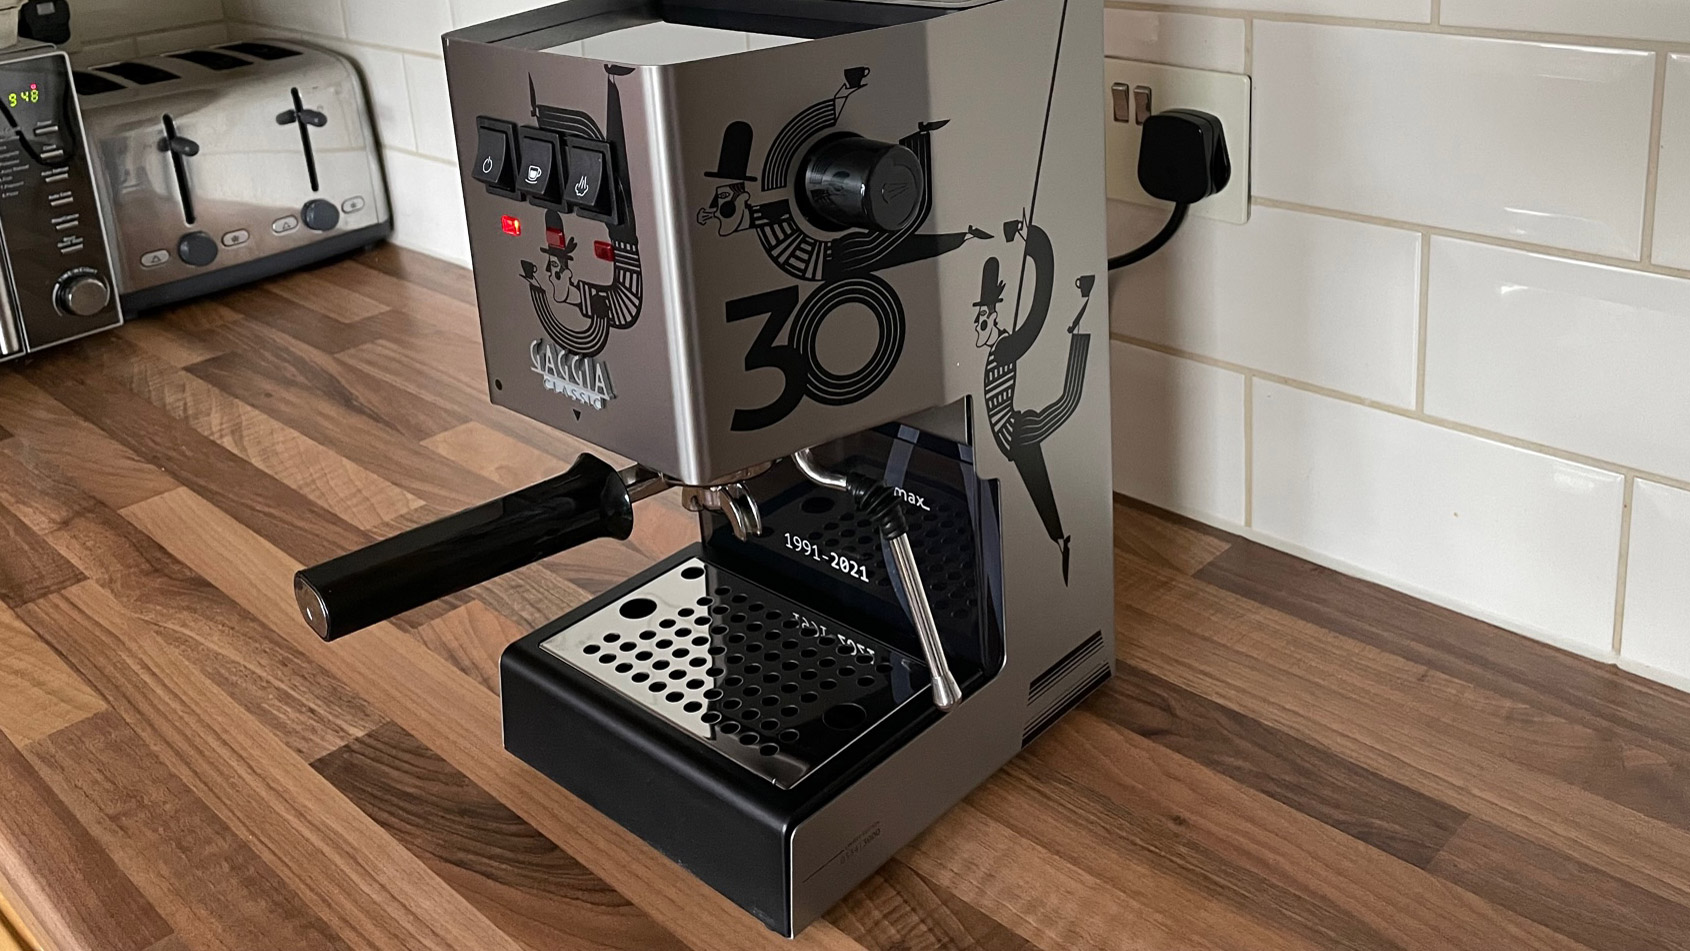 The side view of the Gaggia Classic on a kitchen countertop